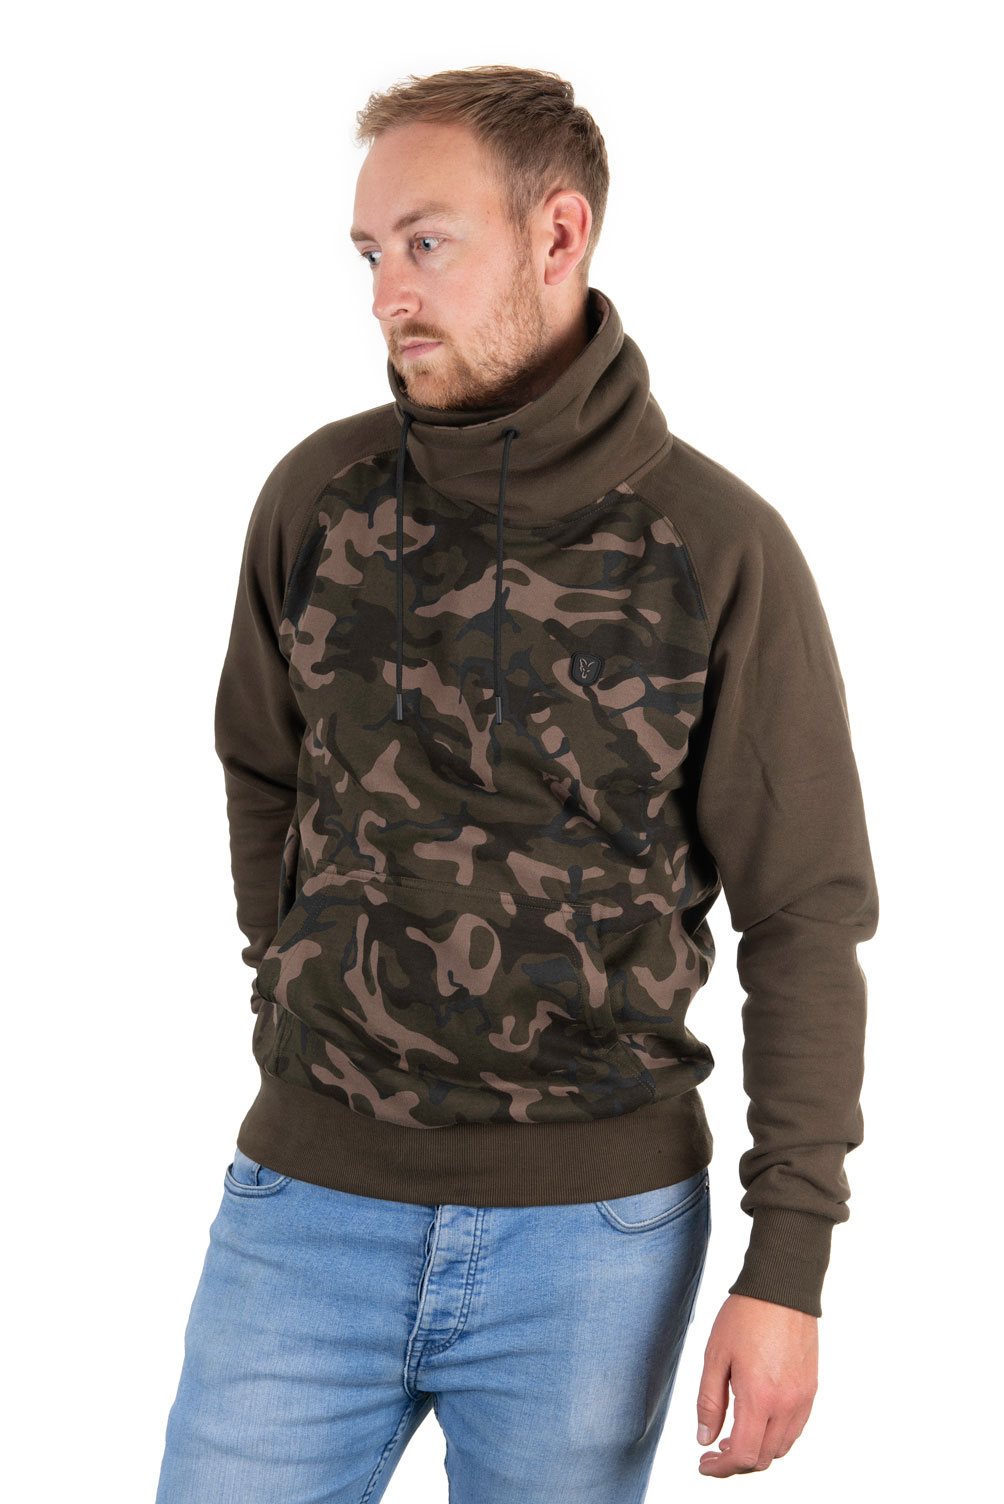 khaki_camo_high_neck_front_anglejpg